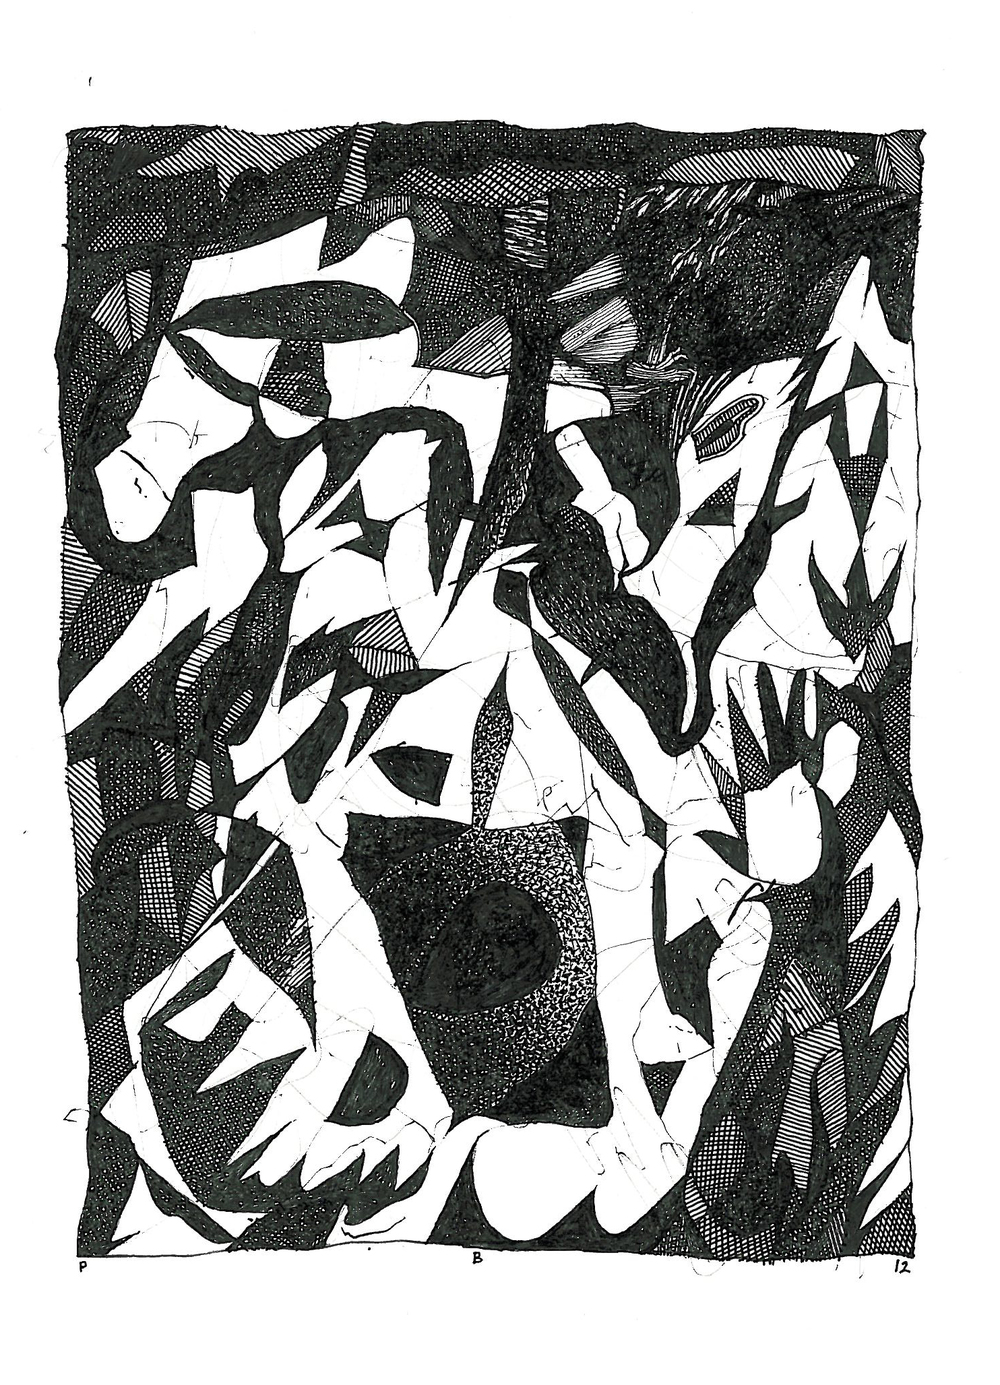 "Pen and Ink - 4.5"" x 5.5"" - 2012"